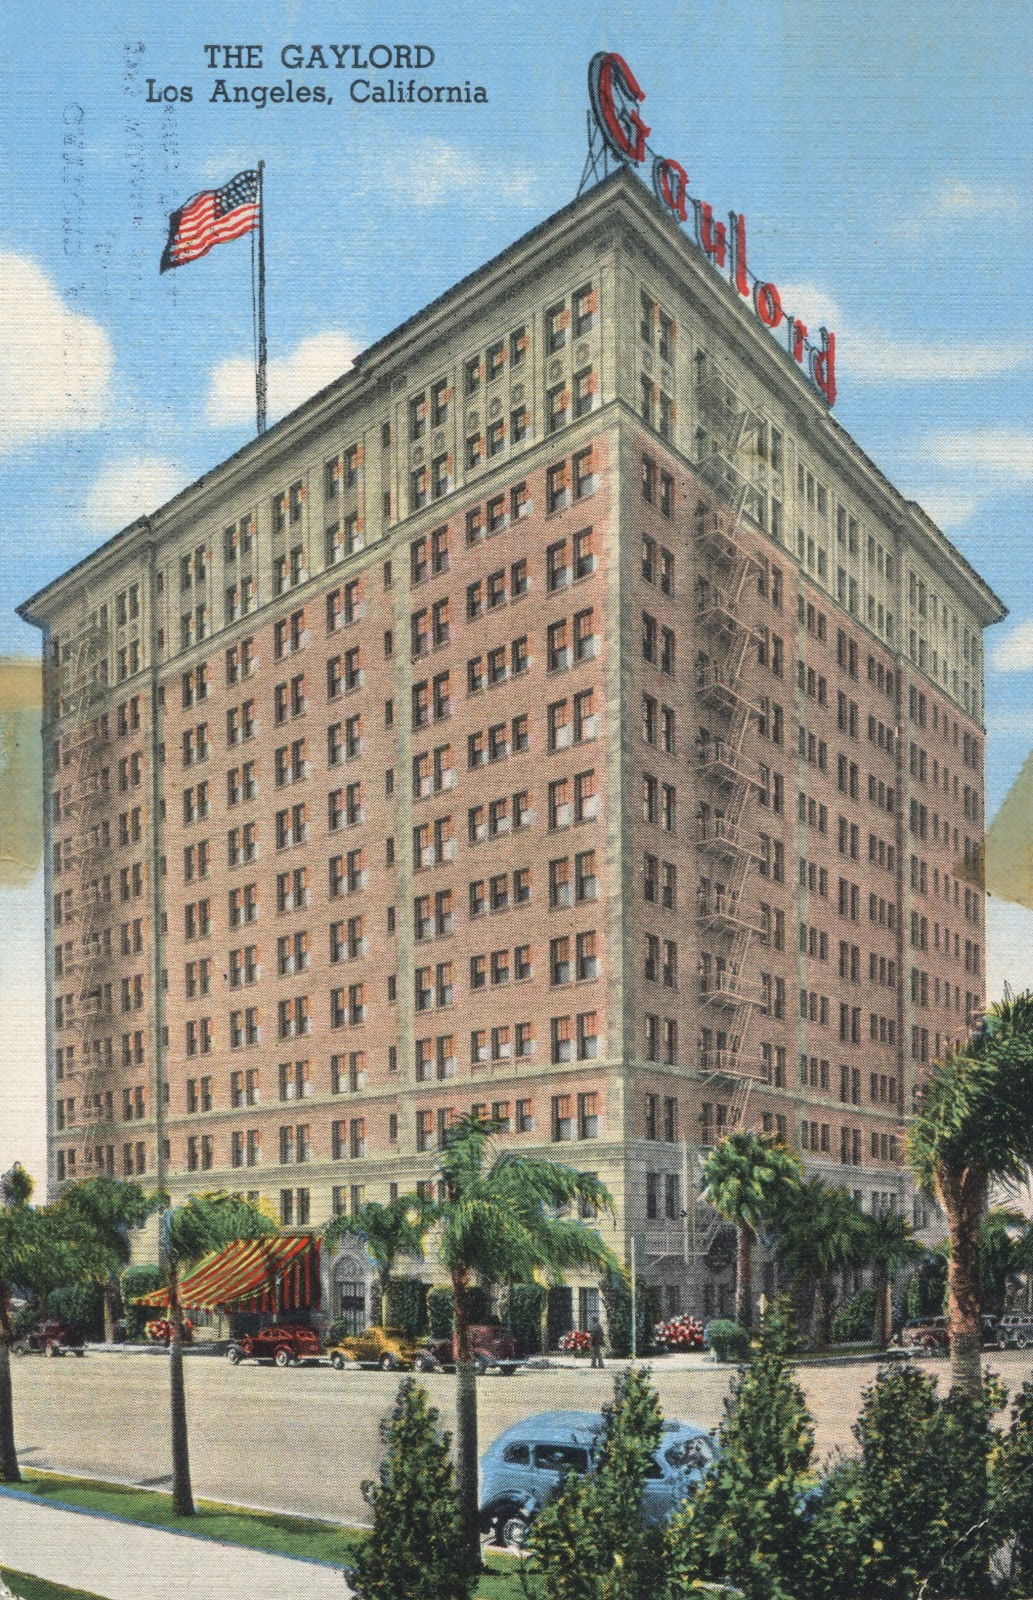 View From Across The Street. This Old Postcard Indicates The Neon, Rooftop  Sign Is Likely As Old As The Building Itself.